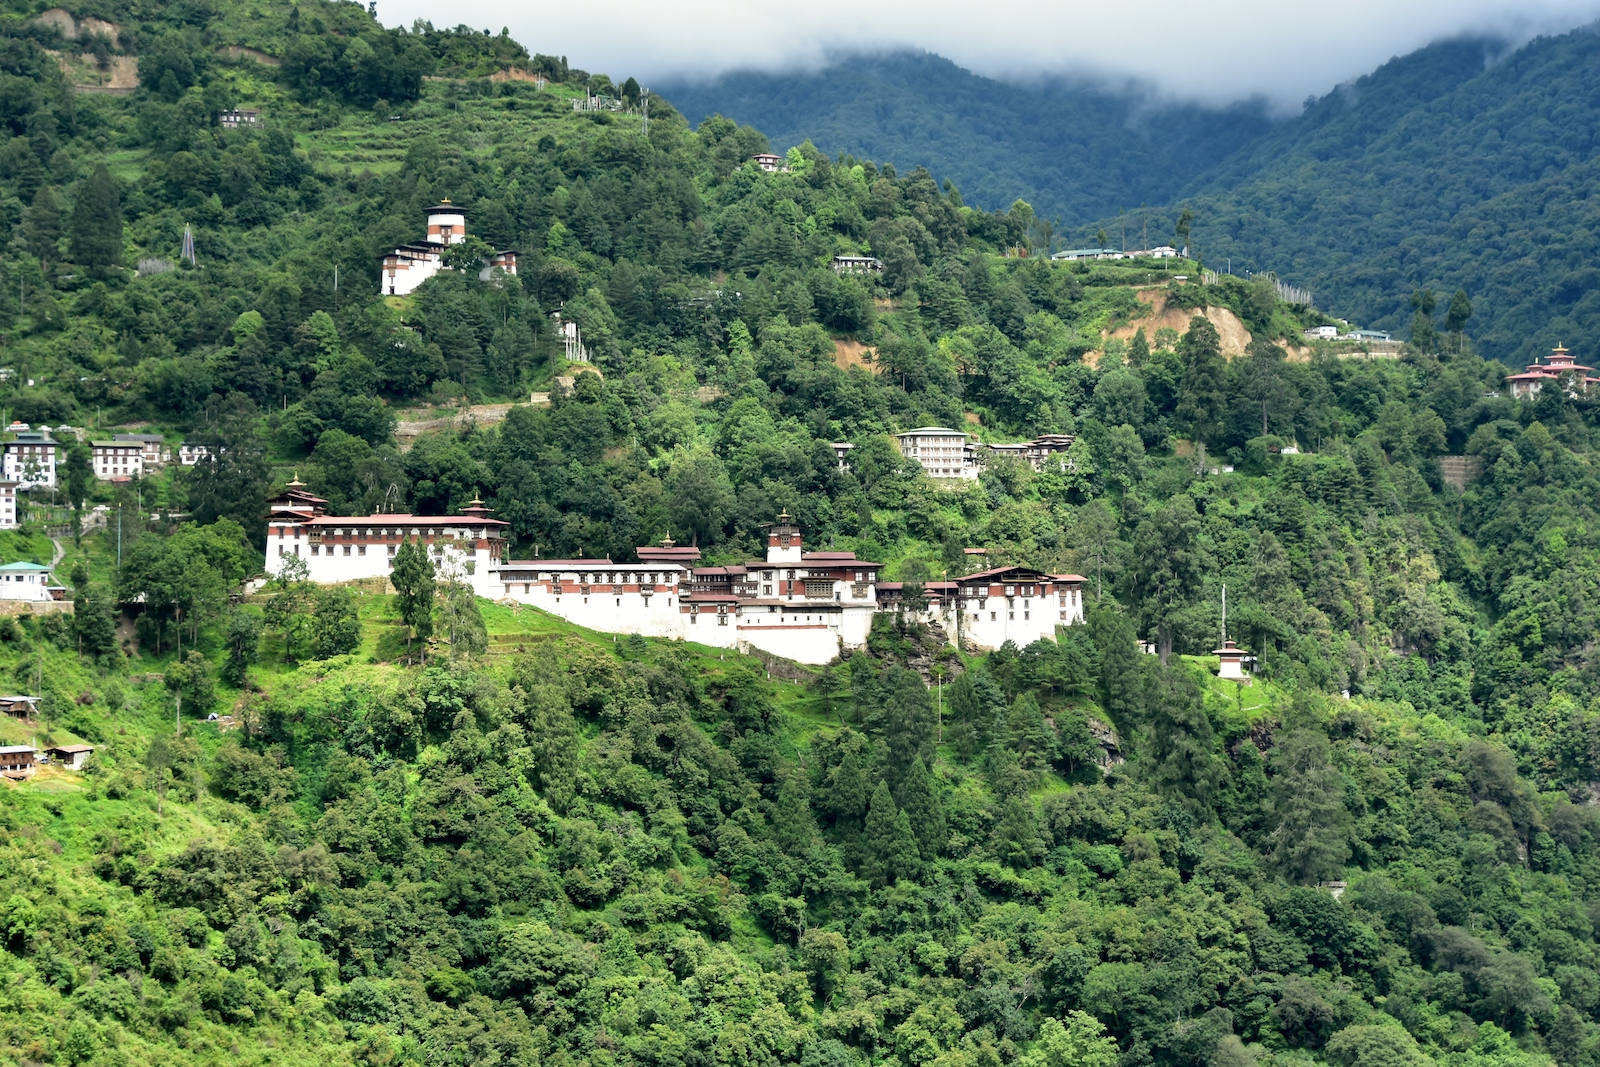 Trongsa Dzong seen from afar, Bhutan